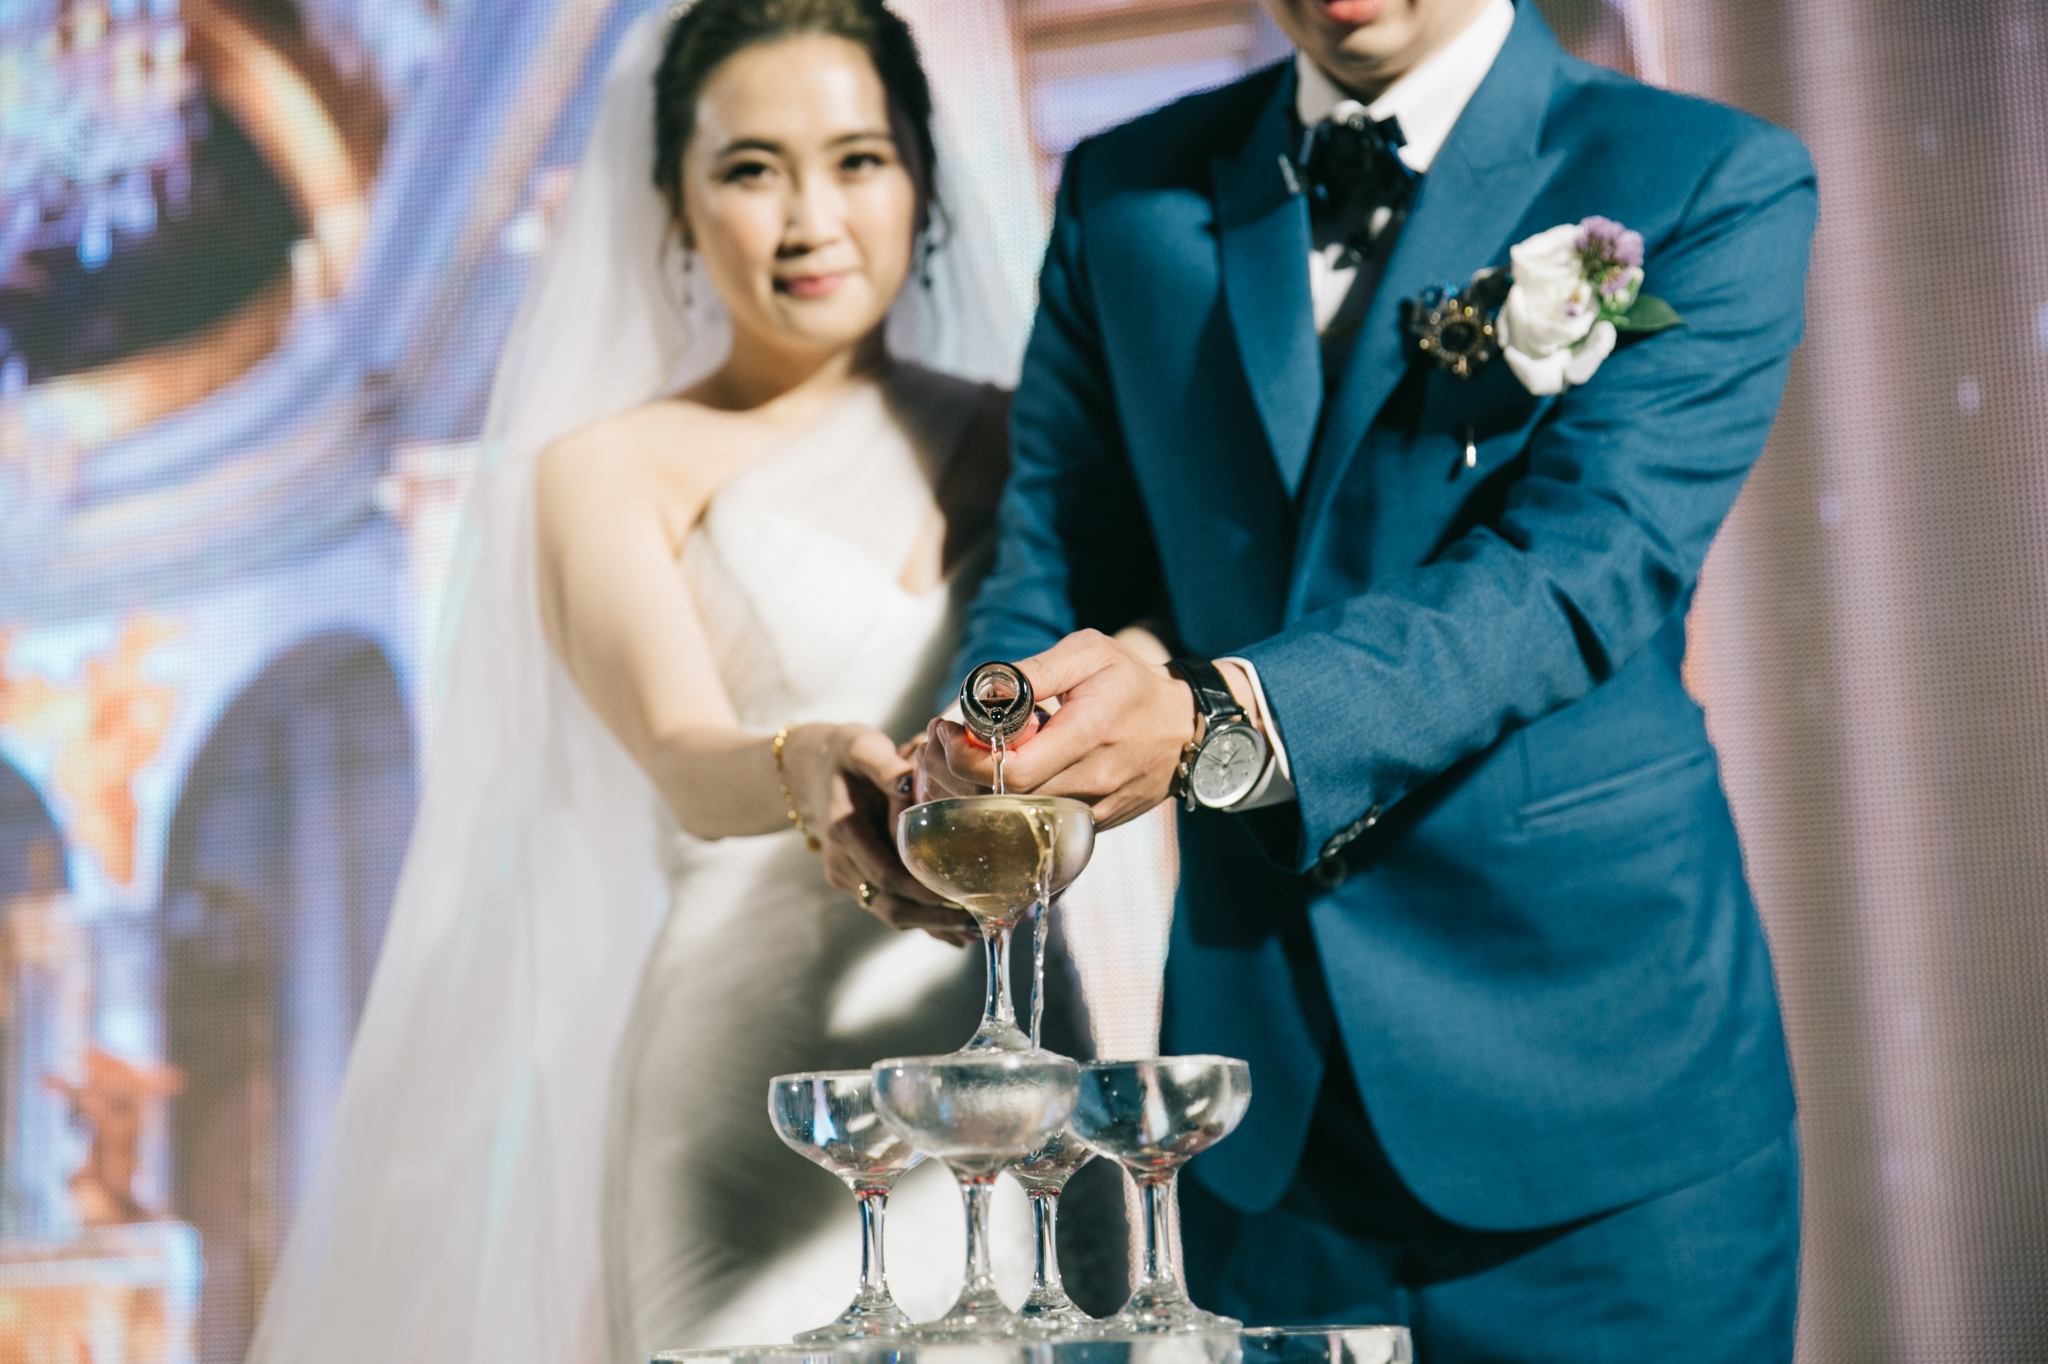 Keddy+Richard-wedding-新莊頤品飯店-187.jpg